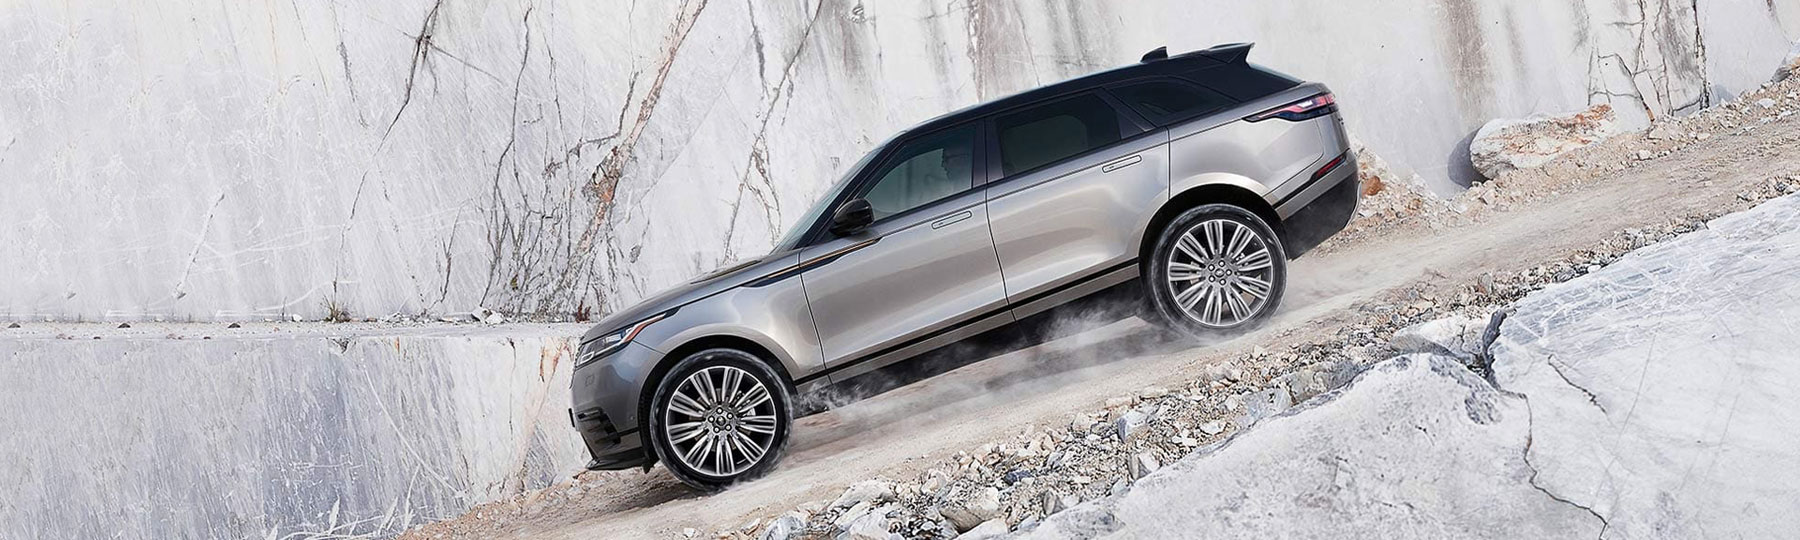 land rover Range Rover Velar New Car Offer